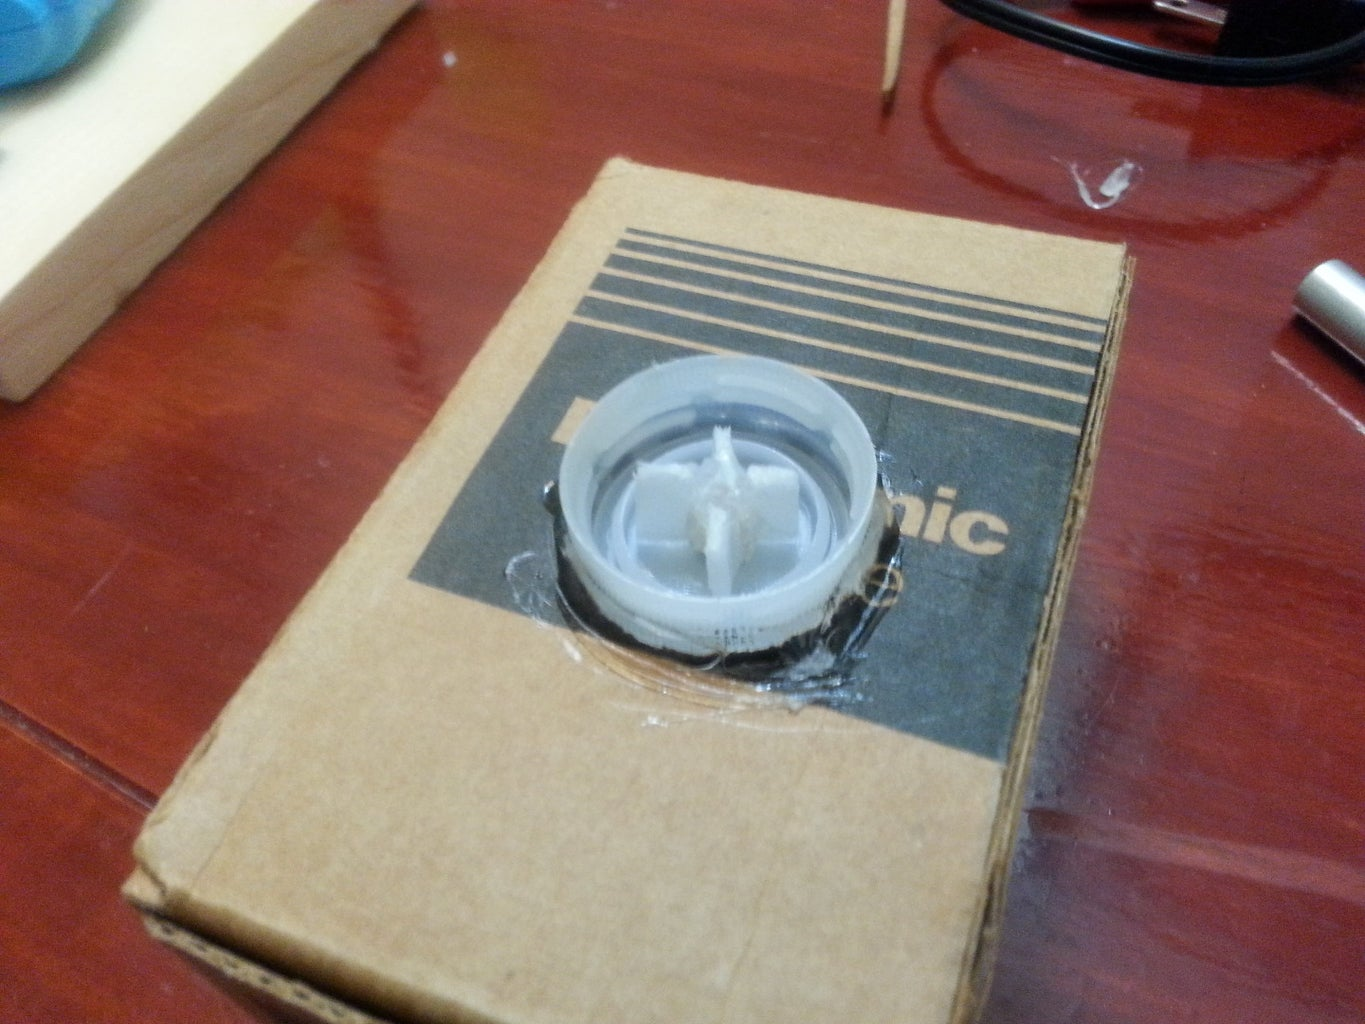 Add in the Arduino and Spinner